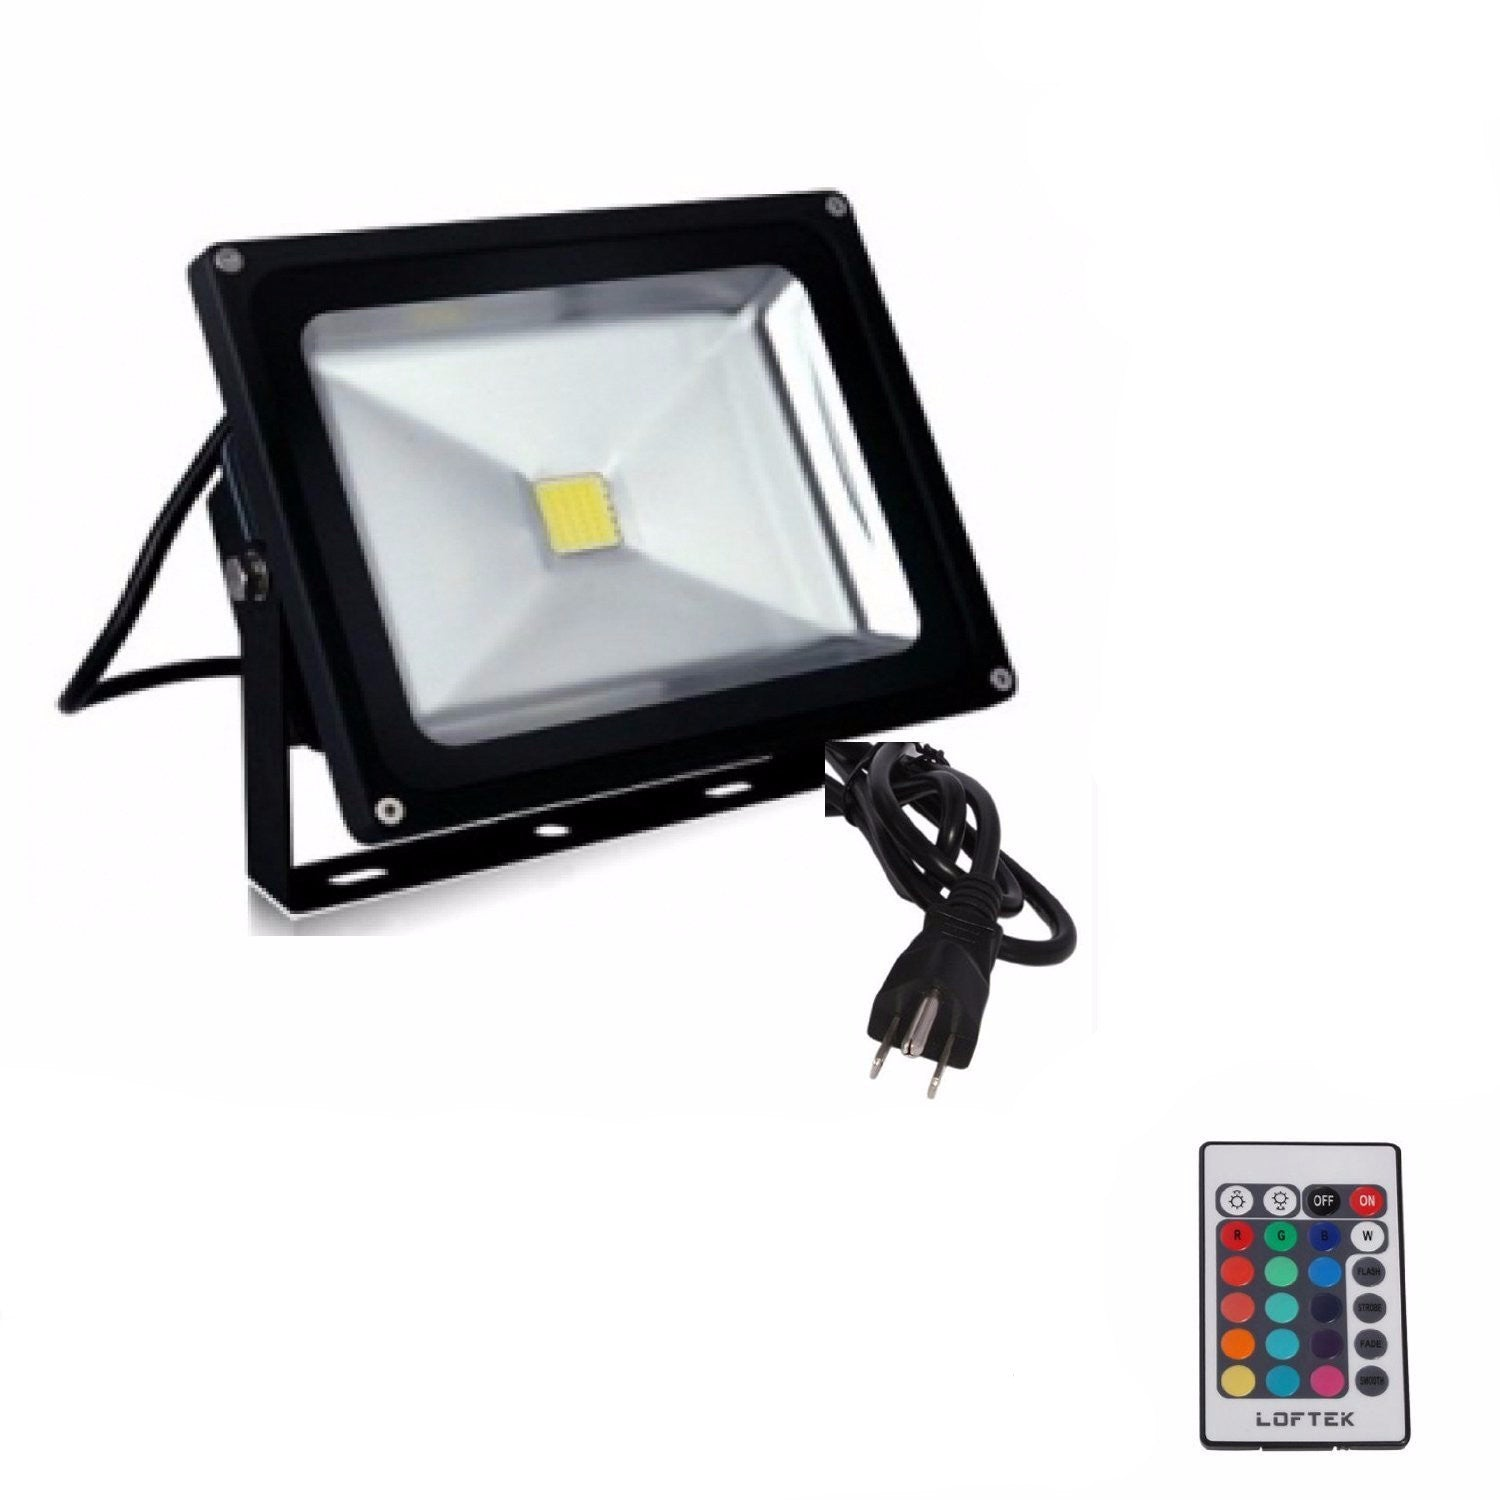 rgb led floodlight spotlight high power online lighting. Black Bedroom Furniture Sets. Home Design Ideas